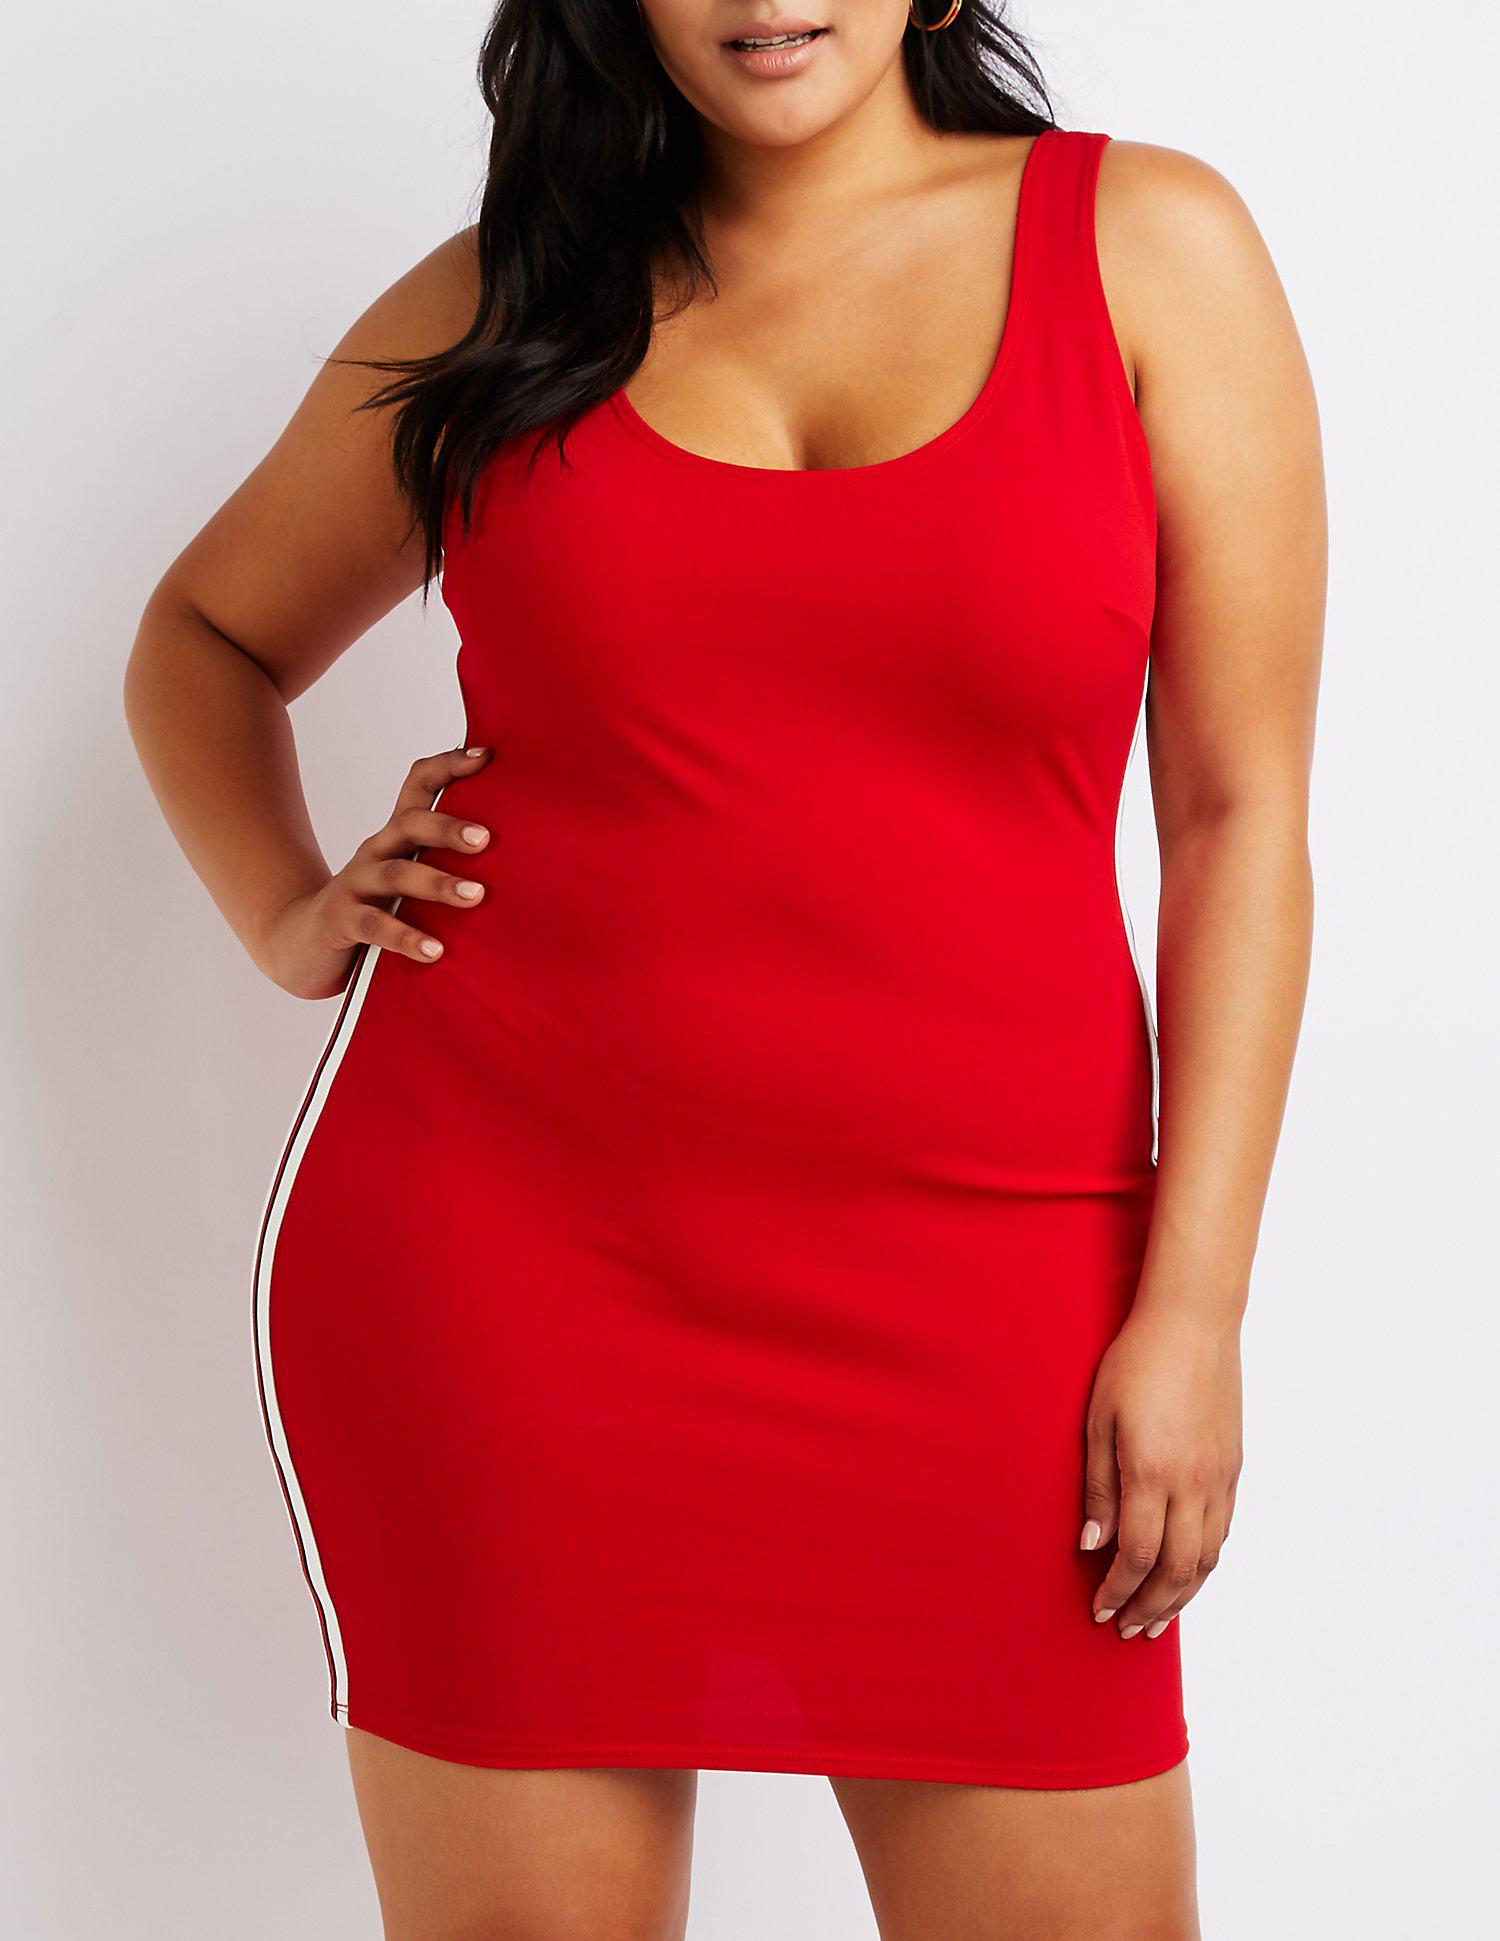 Lyst - Charlotte Russe Plus Size Striped Bodycon Dress in Red